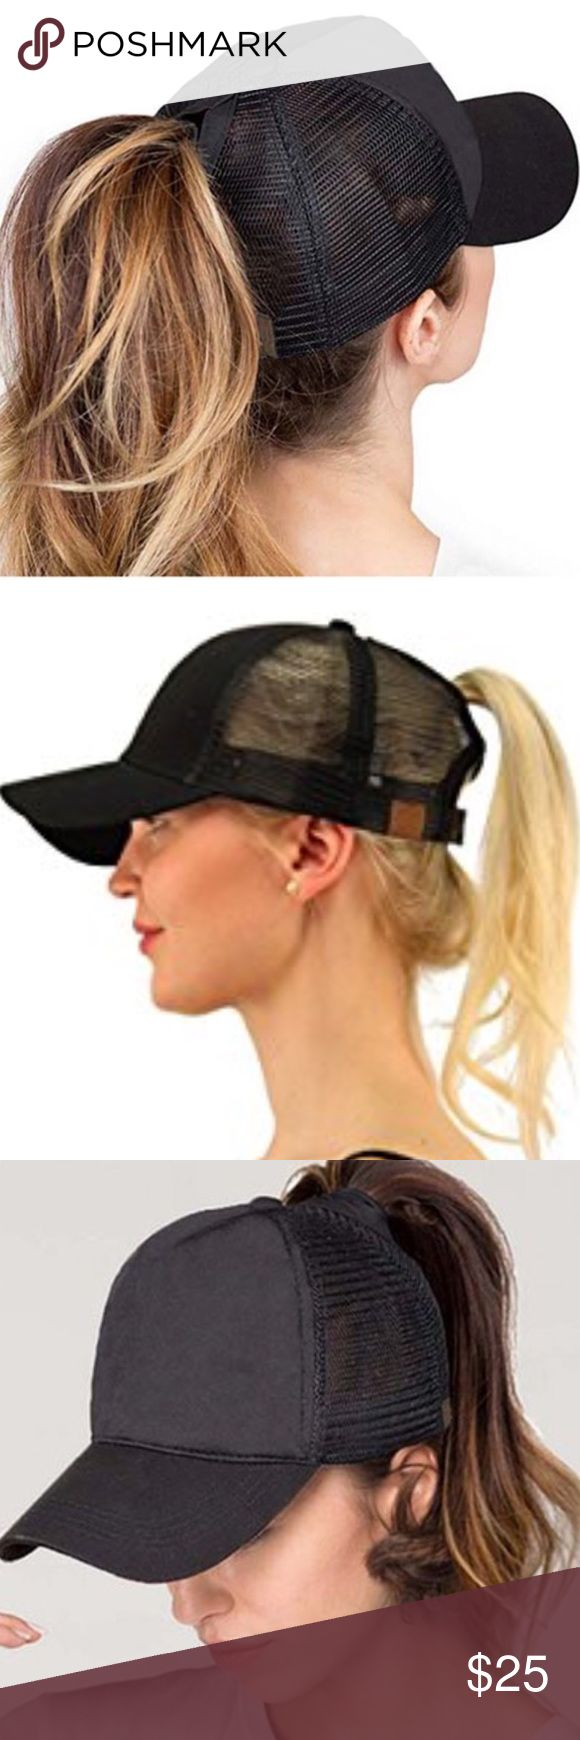 "Ponycap Messy High Bun Ponytail Mesh Cap Hat One size fits most with adjustable hook and loop fastener. Ponytail slot : 3"" by 5"" , perfect for pulling your messy bun or high ponytail through . Simply pull hair through slot and adjust to desired style . Even suitable for man buns ! This listing is for black . Boutique Accessories Hats"